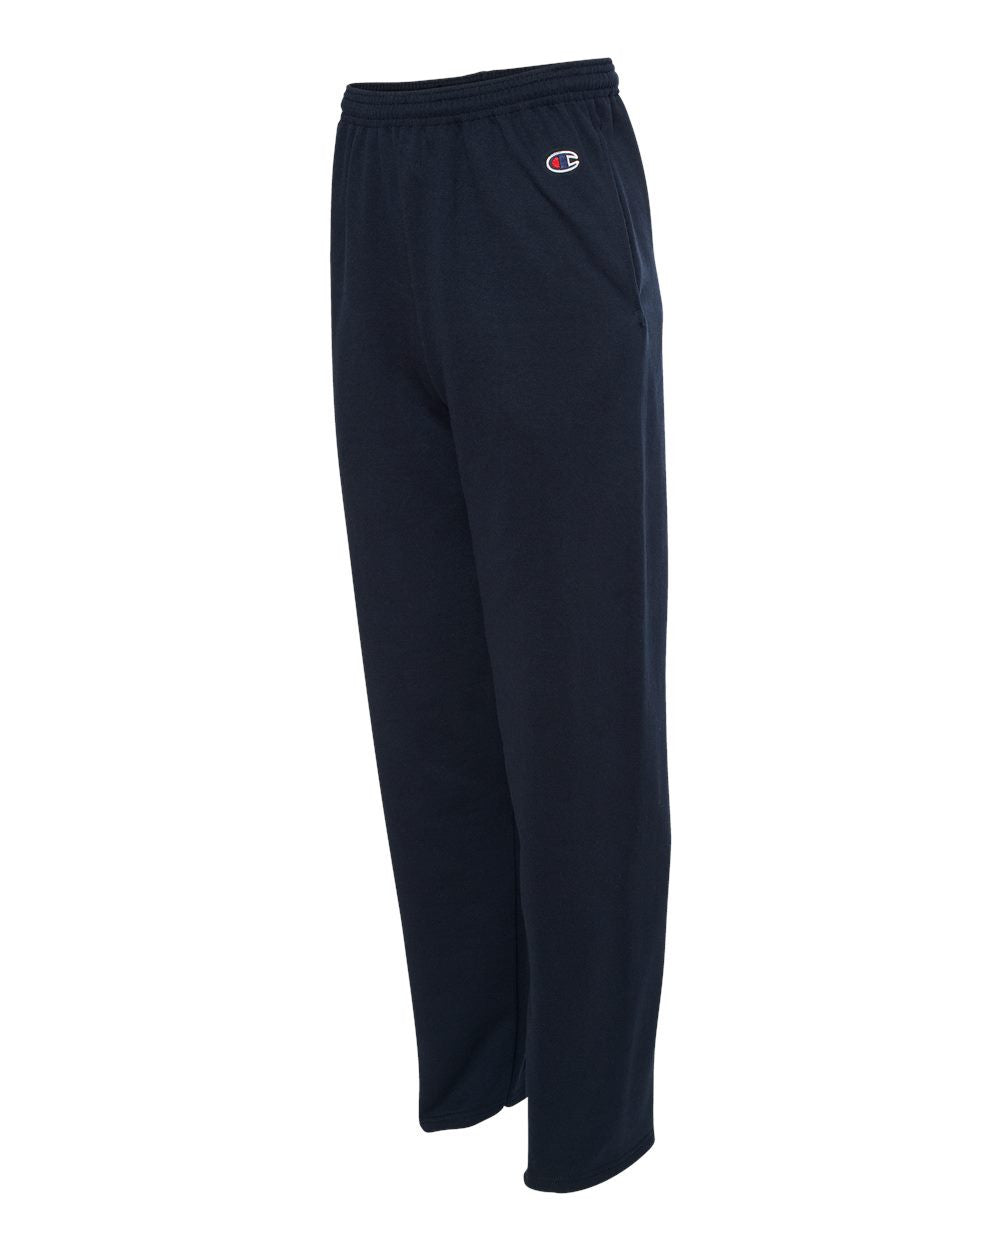 Sweatpants with Pocket by Champion